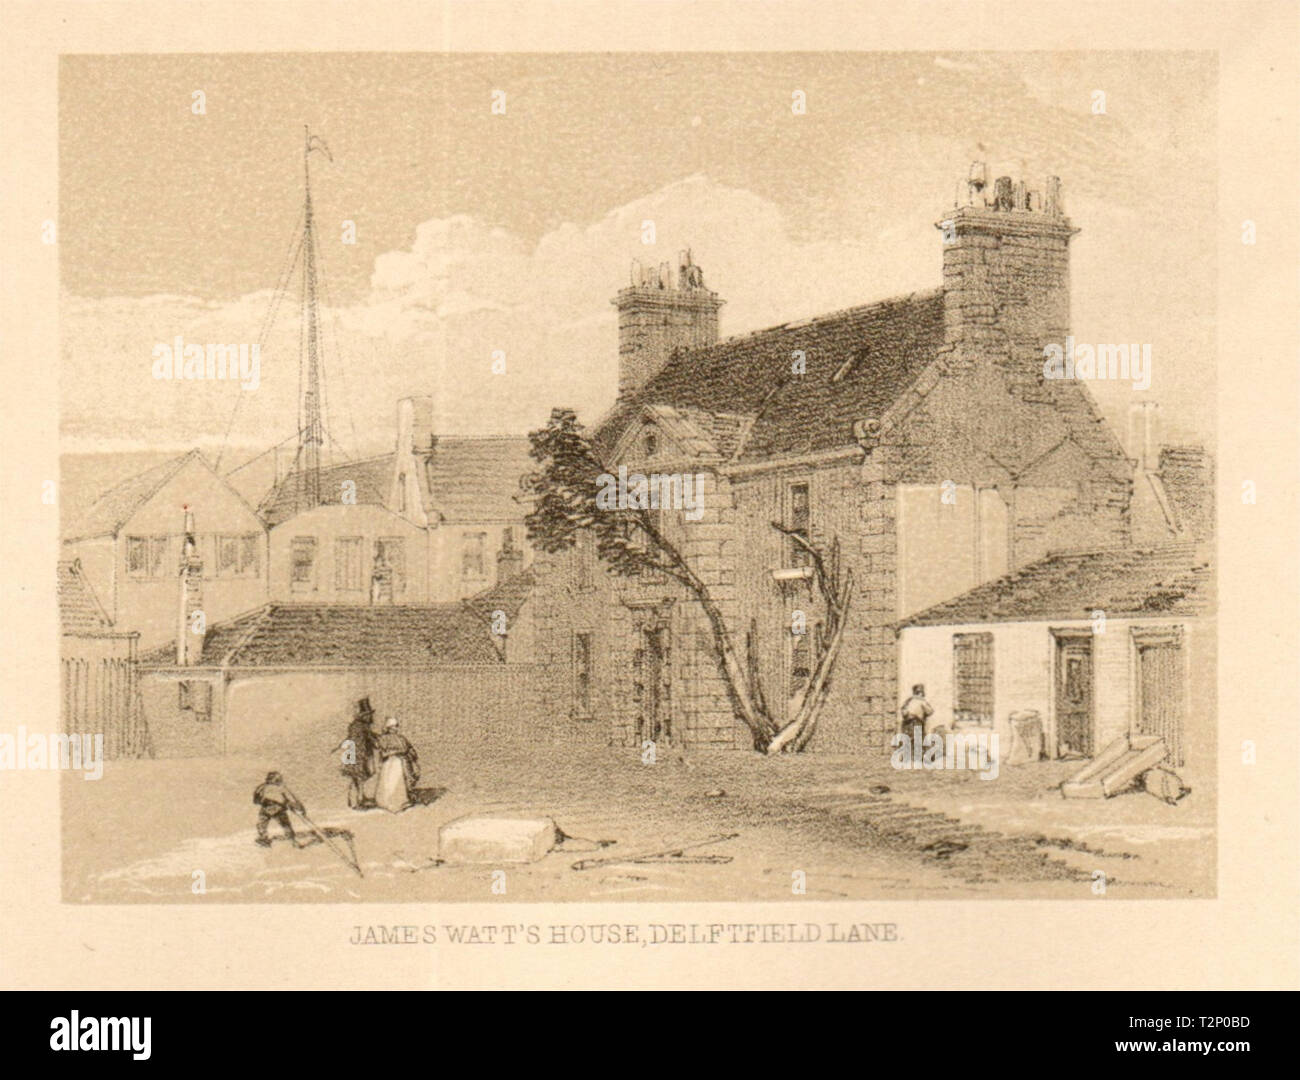 James Watt's house, Delftfield lane, Glasgow. SMALL 1848 old antique print - Stock Image